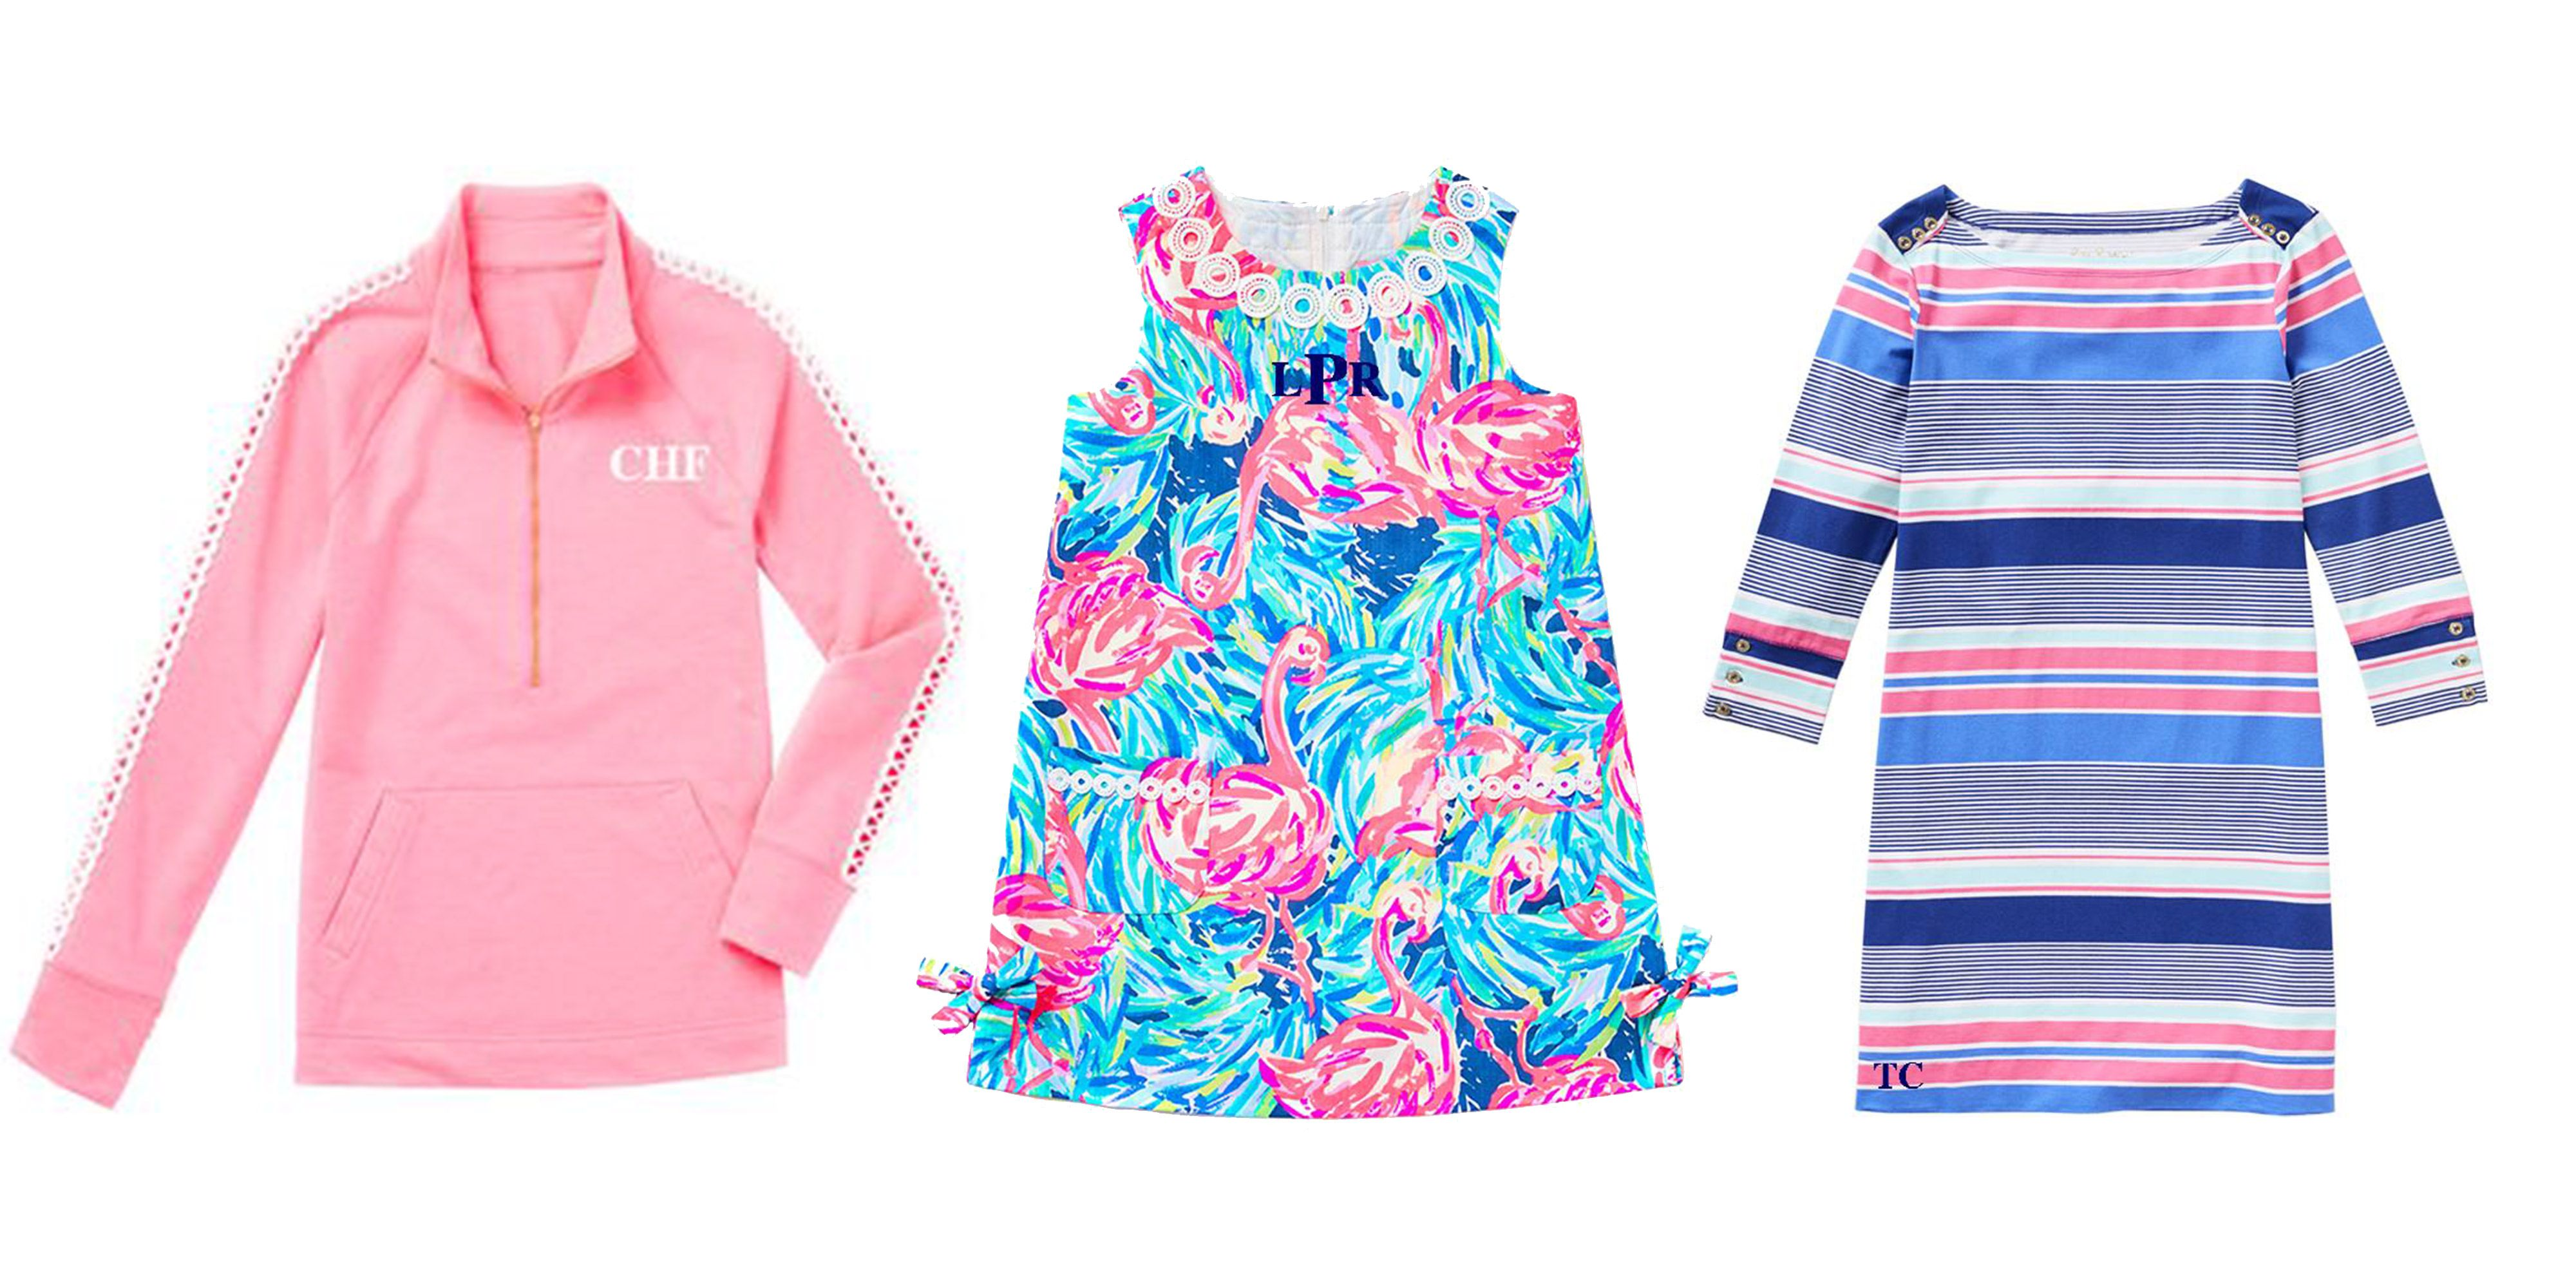 Lilly Pulitzer Introduces Monogramming